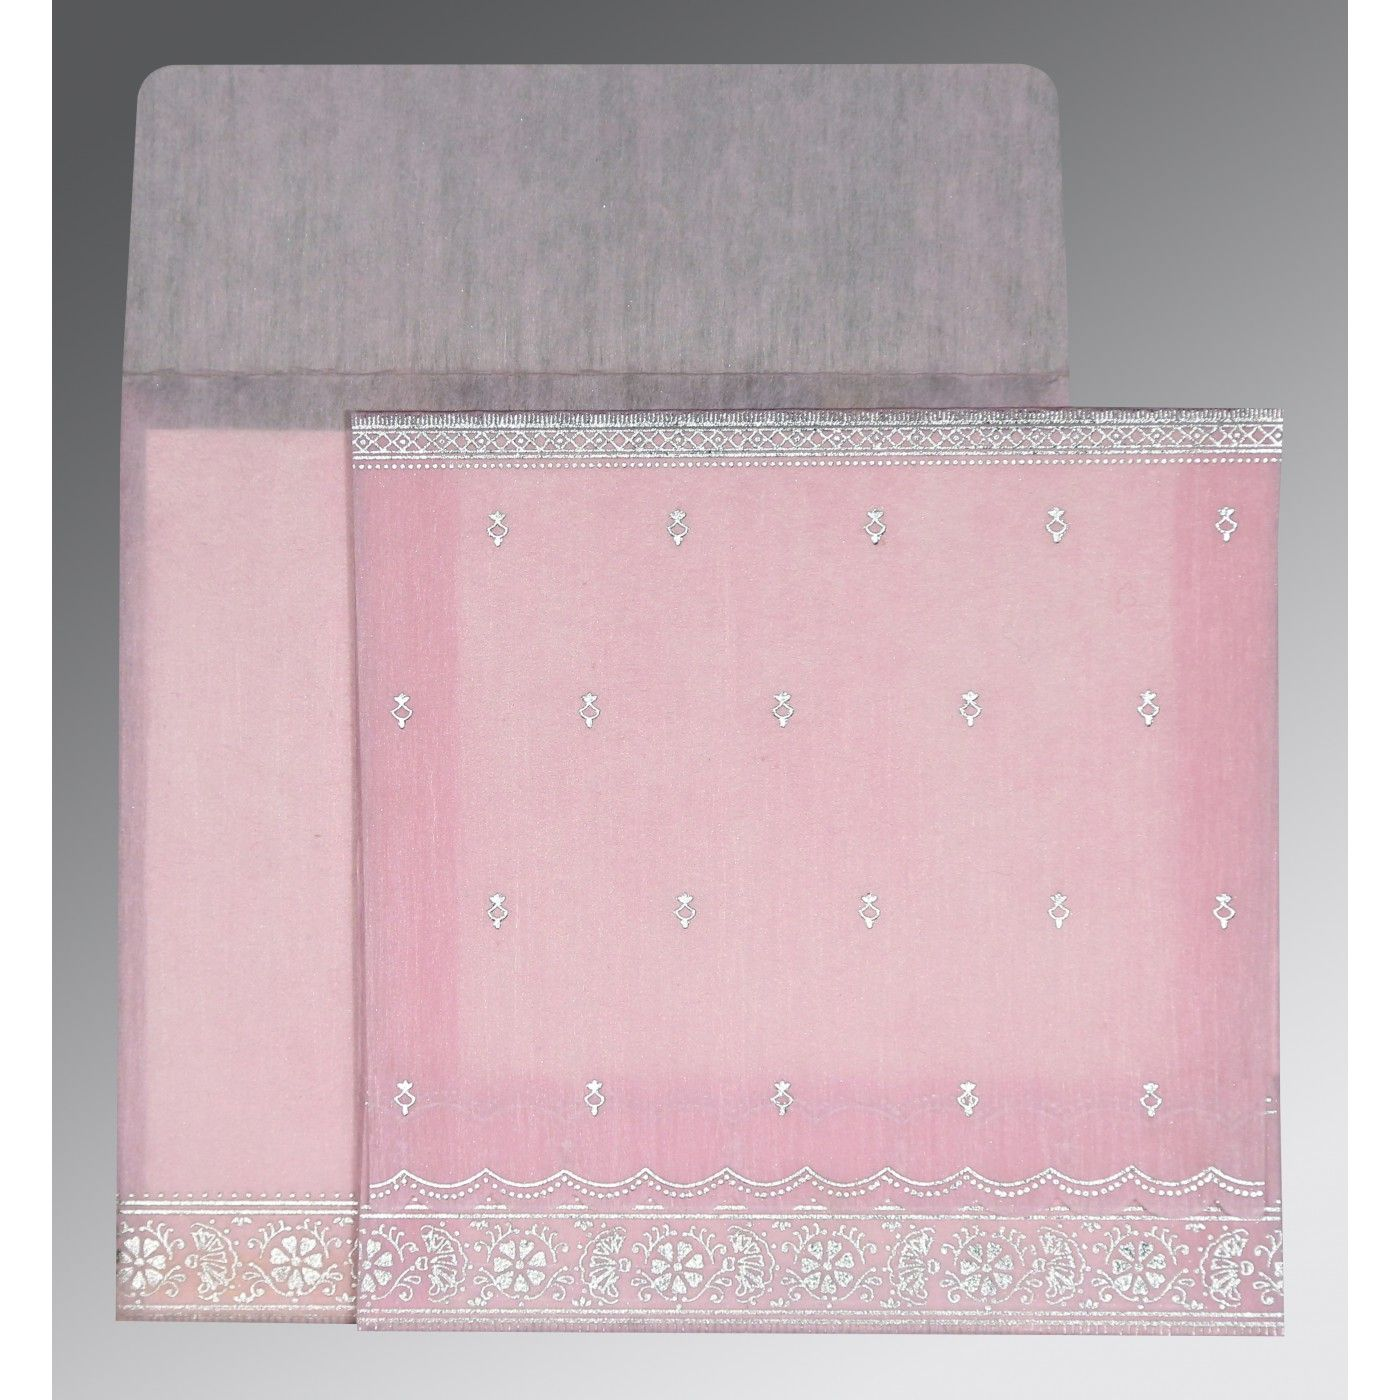 BABY PINK WOOLY FOIL STAMPED WEDDING CARD : CW-8242N - IndianWeddingCards